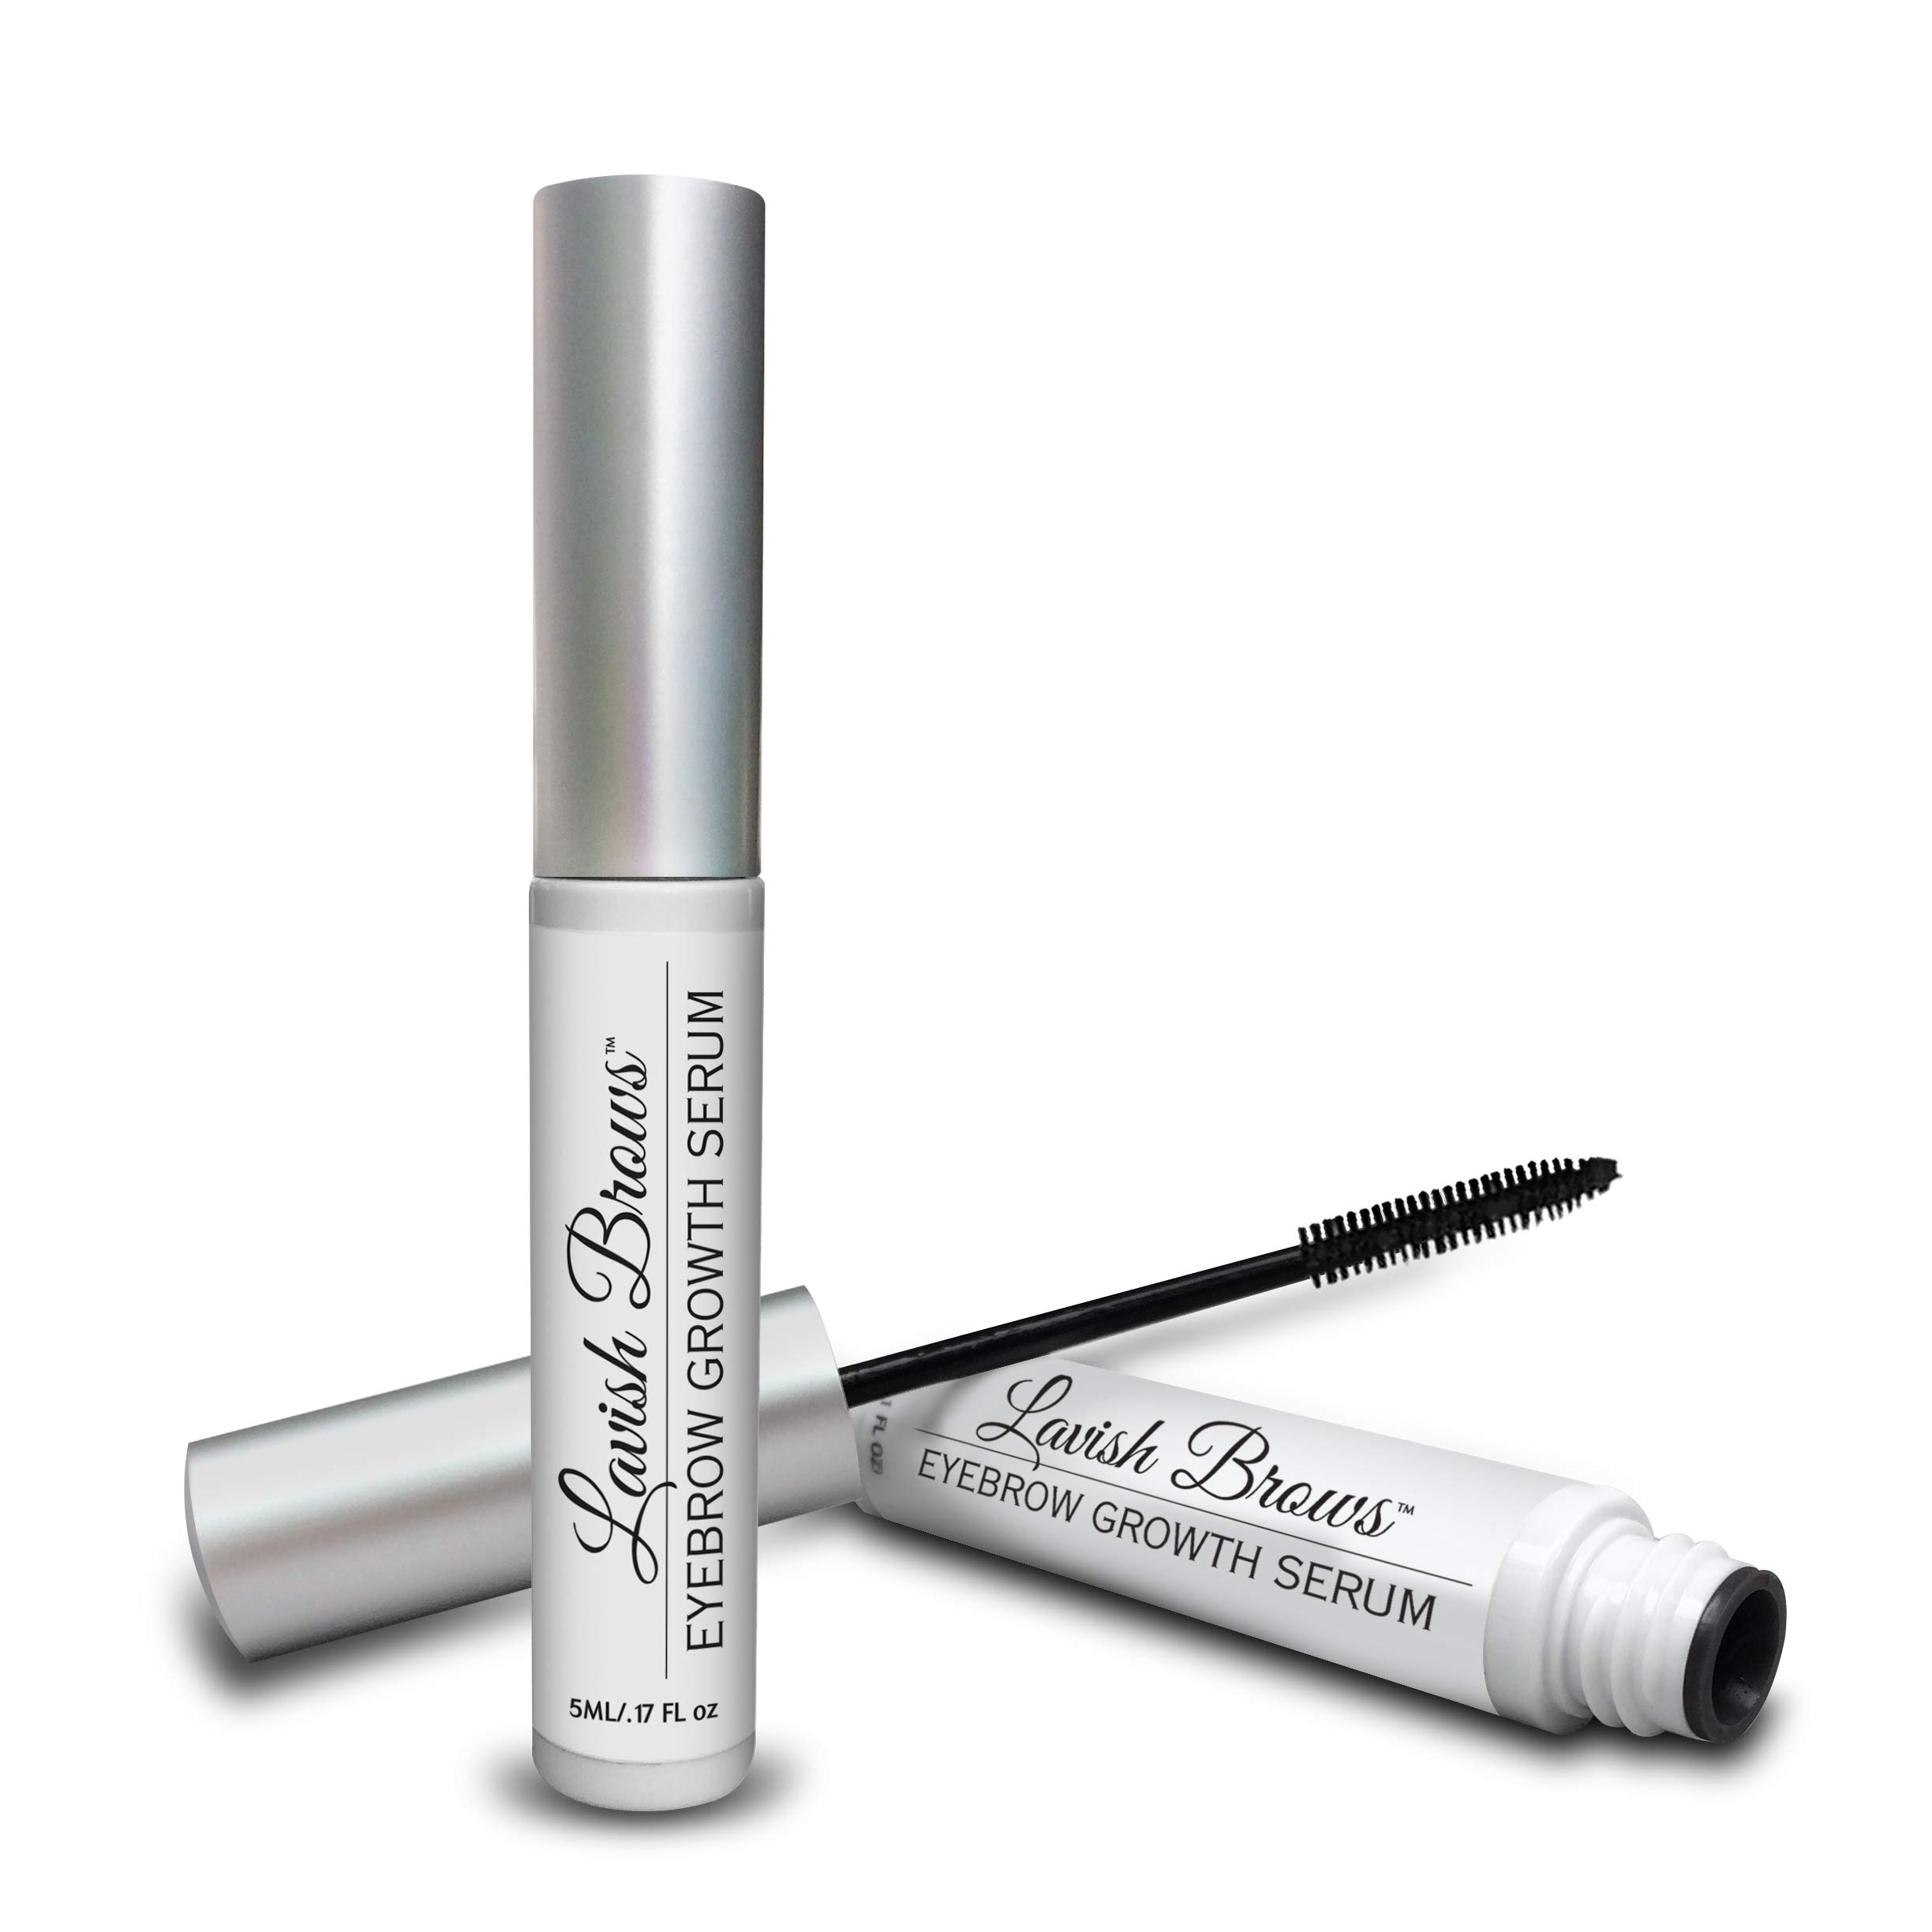 Pronexa Hairgenics Lavish Brows - Eyebrow Growth Enhancer Serum with Biotin, Castor Oil & Natural Growth Peptides for Long, Thick Looking Eyebrows! Dermatologist Certified & Hypoallergenic.